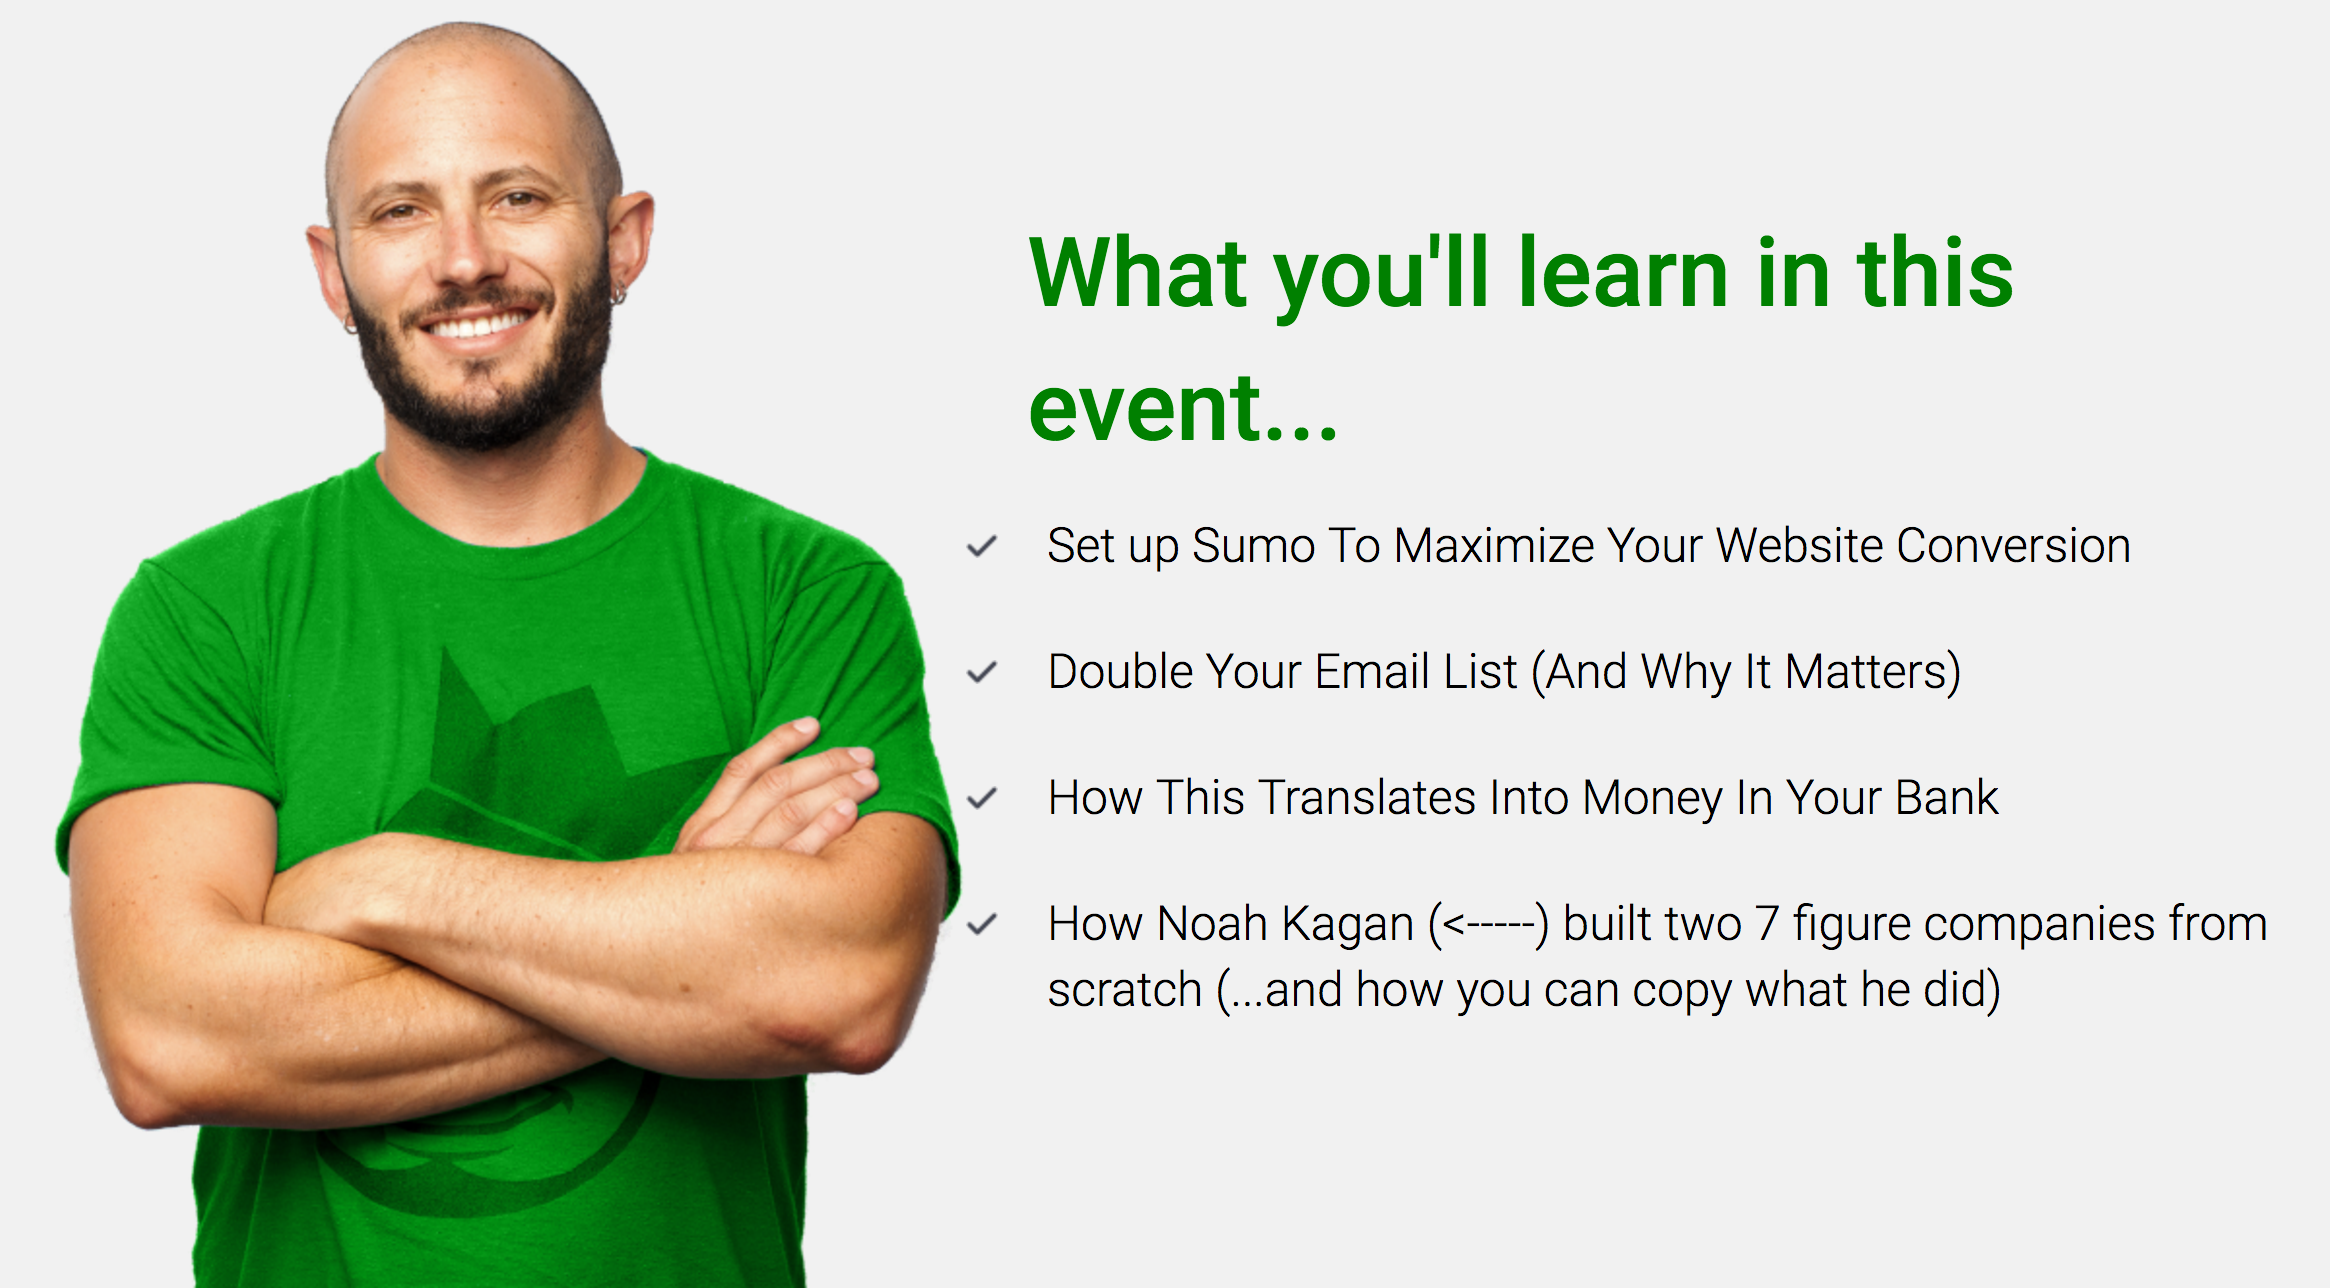 Screenshot of a webinar promotion image featuring Noah Kagan